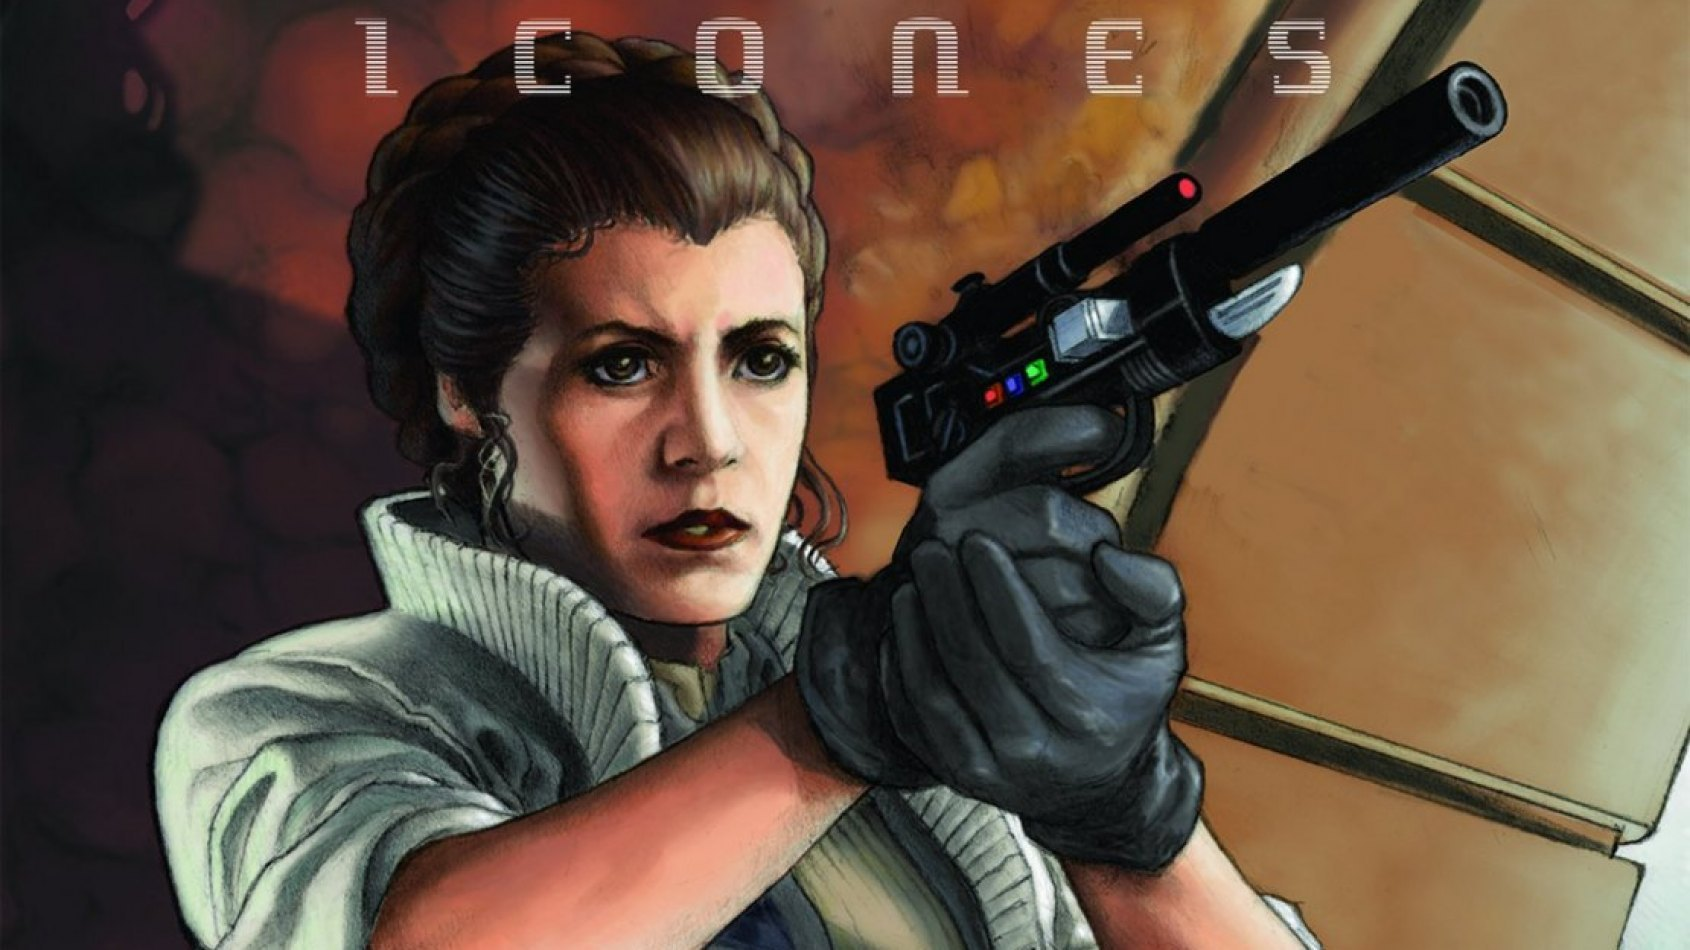 Review : Icones 2 : Leia Organa